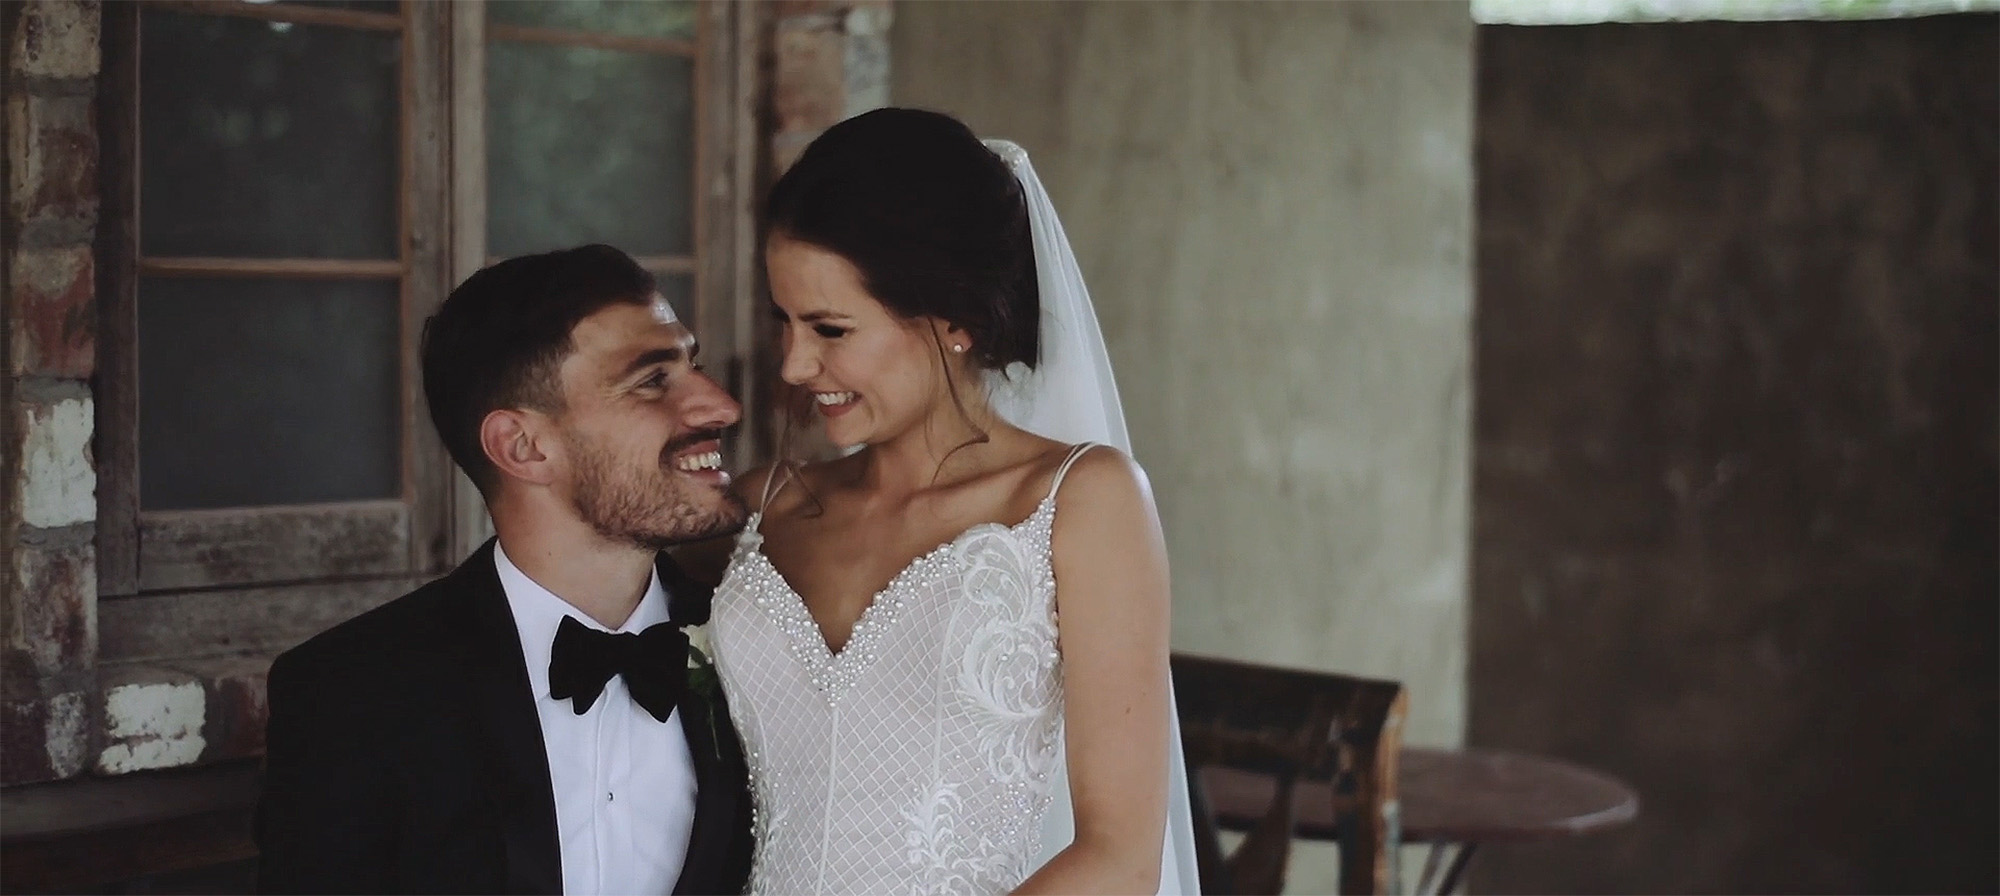 Annette-and-Dani-Films-Bronte and James4-wedding-video.jpg